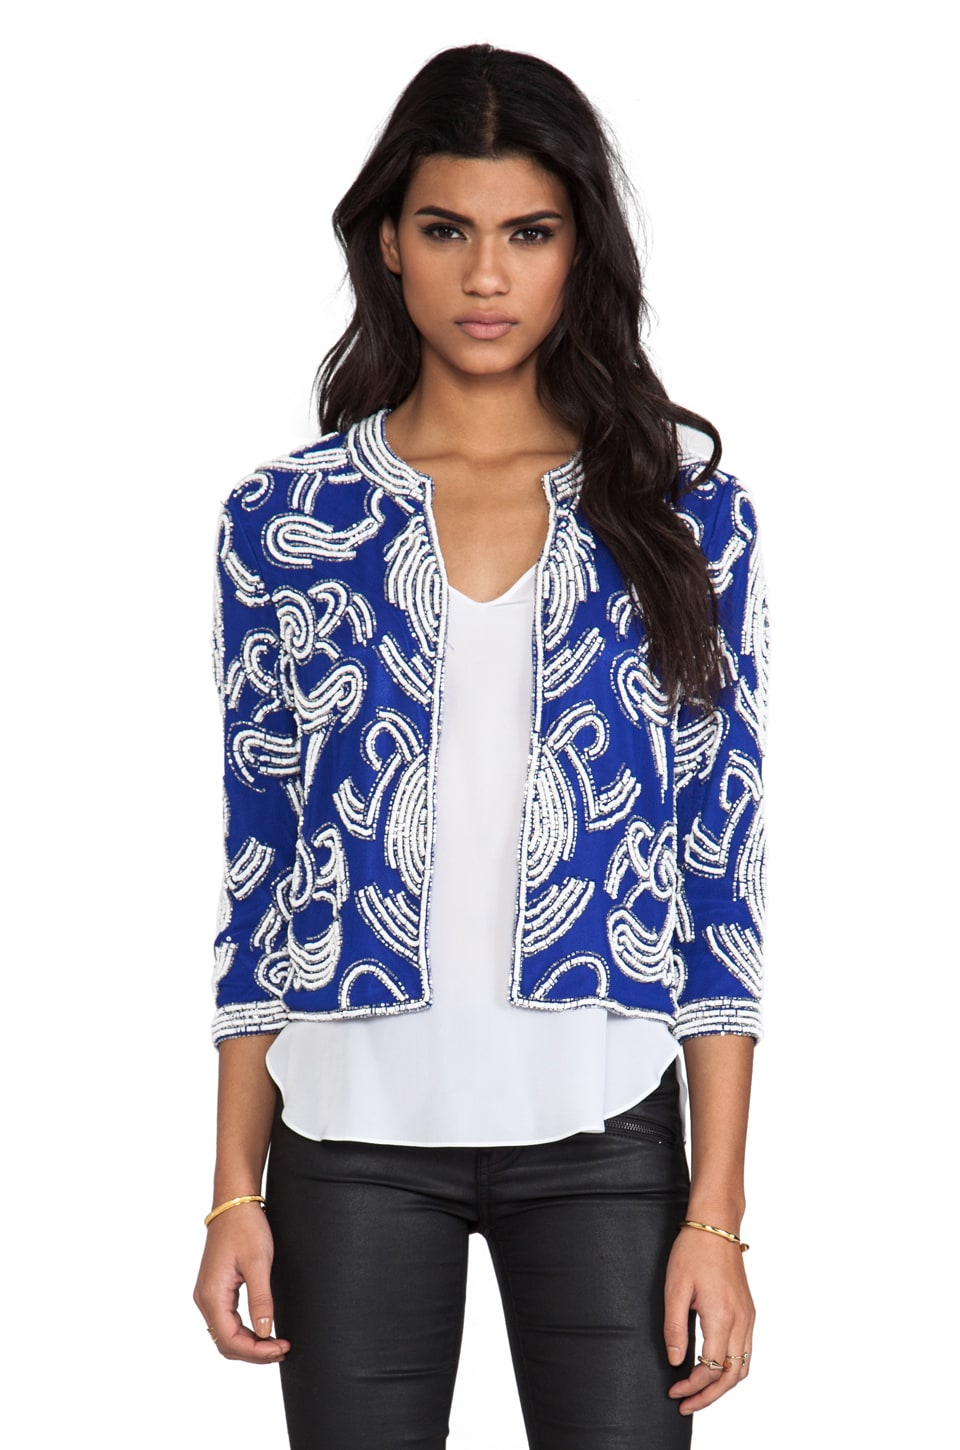 Yumi Kim Becca Jacket in Navy Abstract